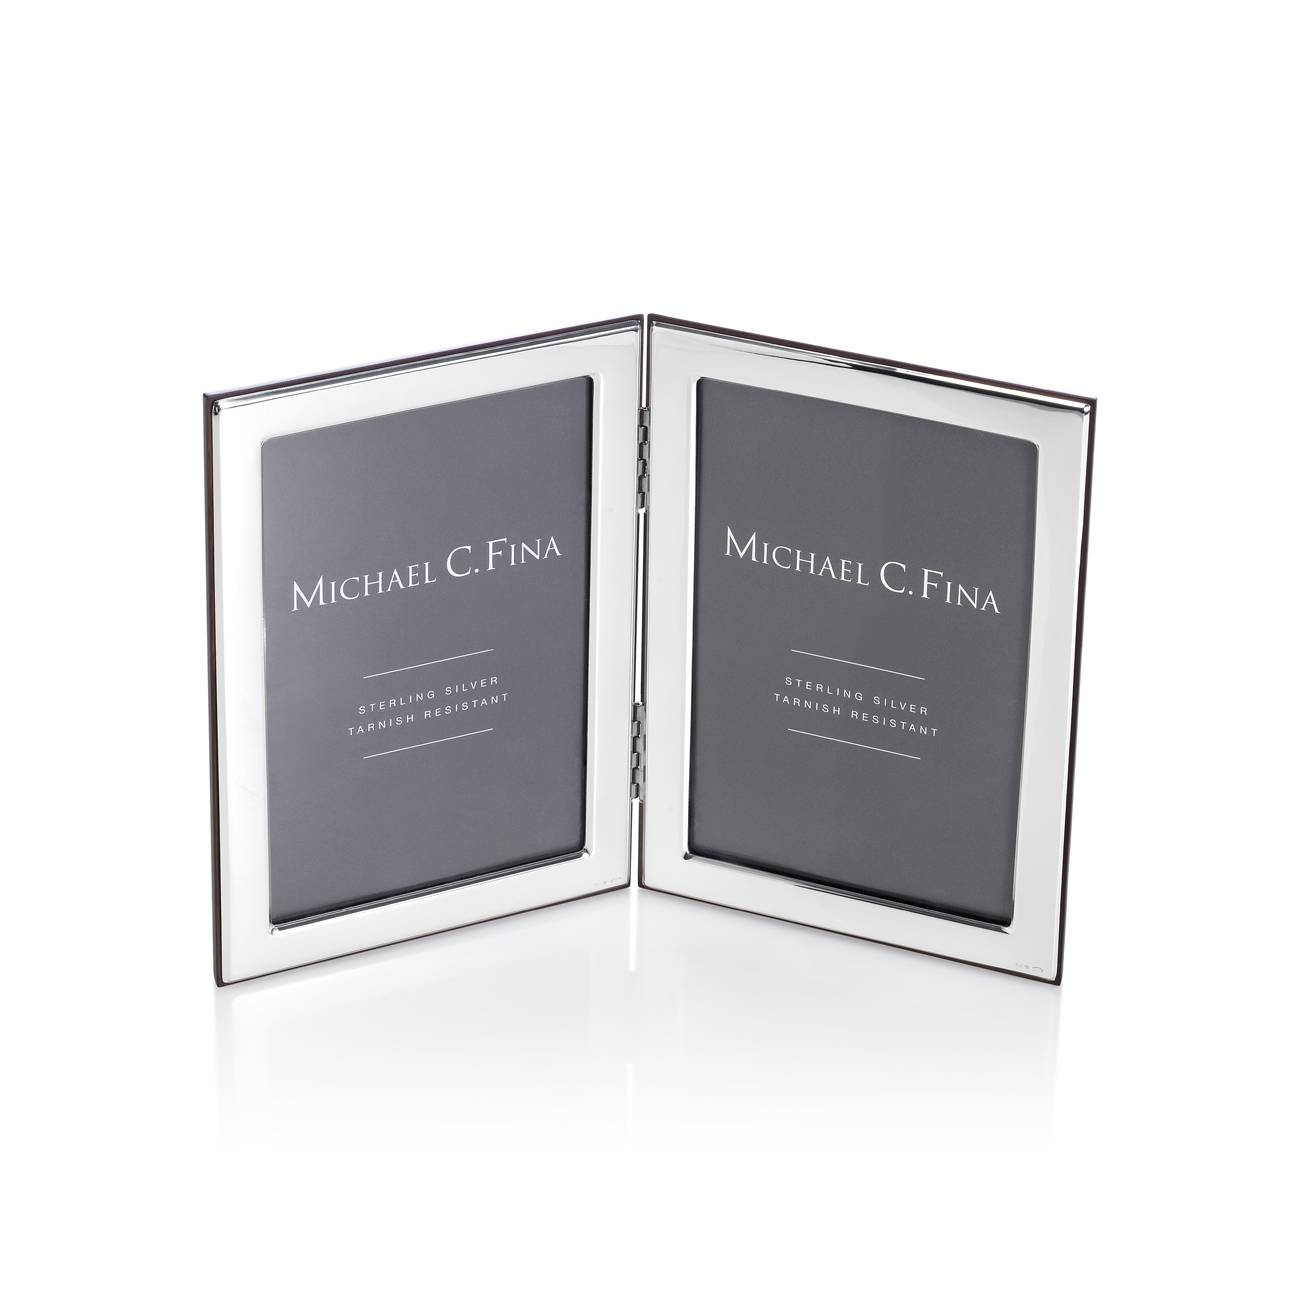 Michael C. Fina  Manhattan Sterling Silver Double Frame 4x6